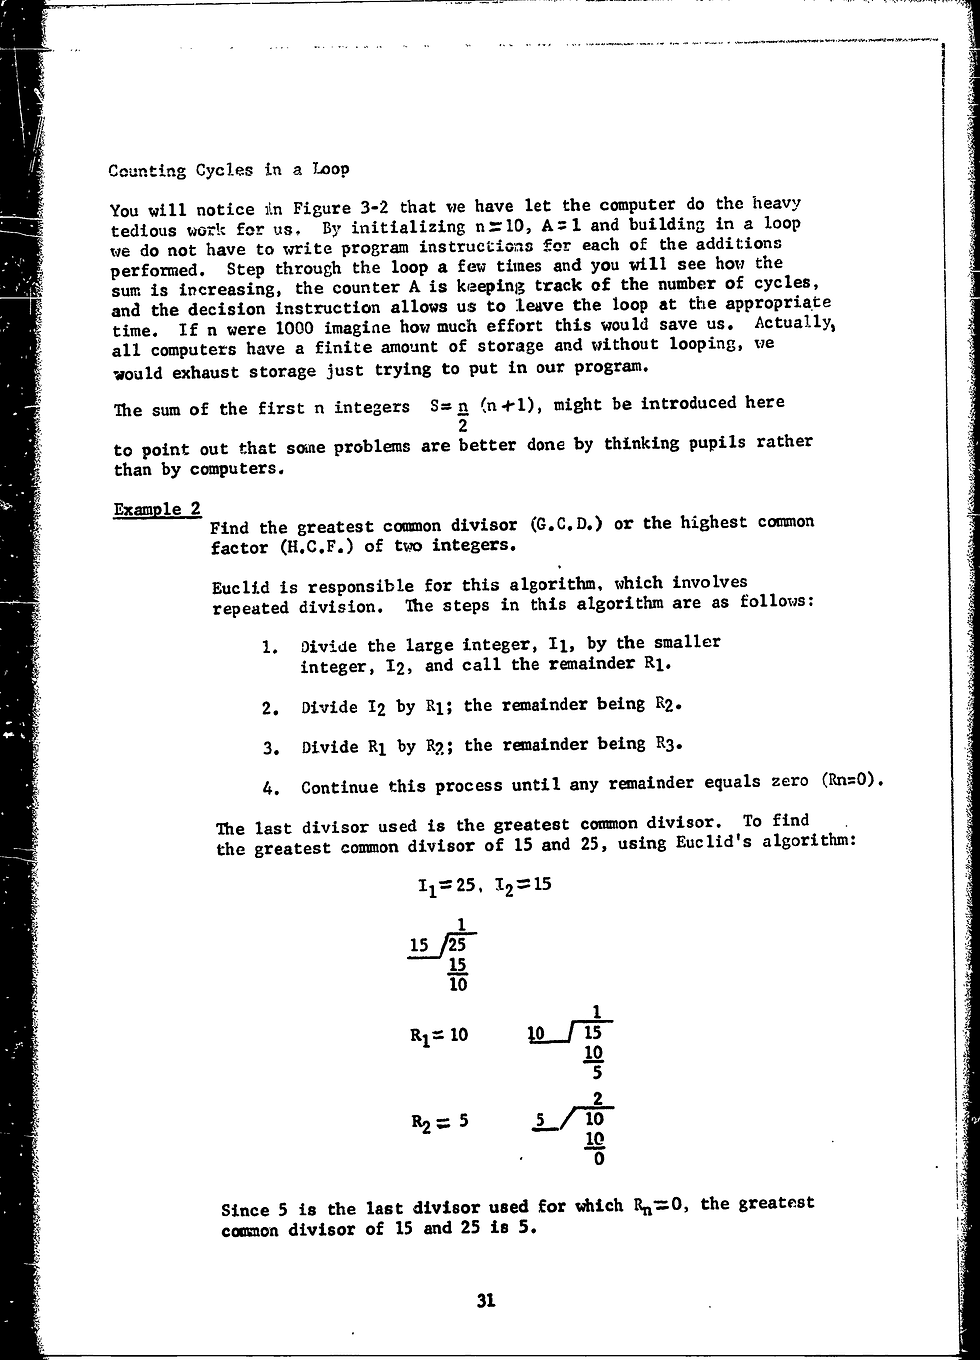 WYLE Instruction_Page_041_Image_0001.tif